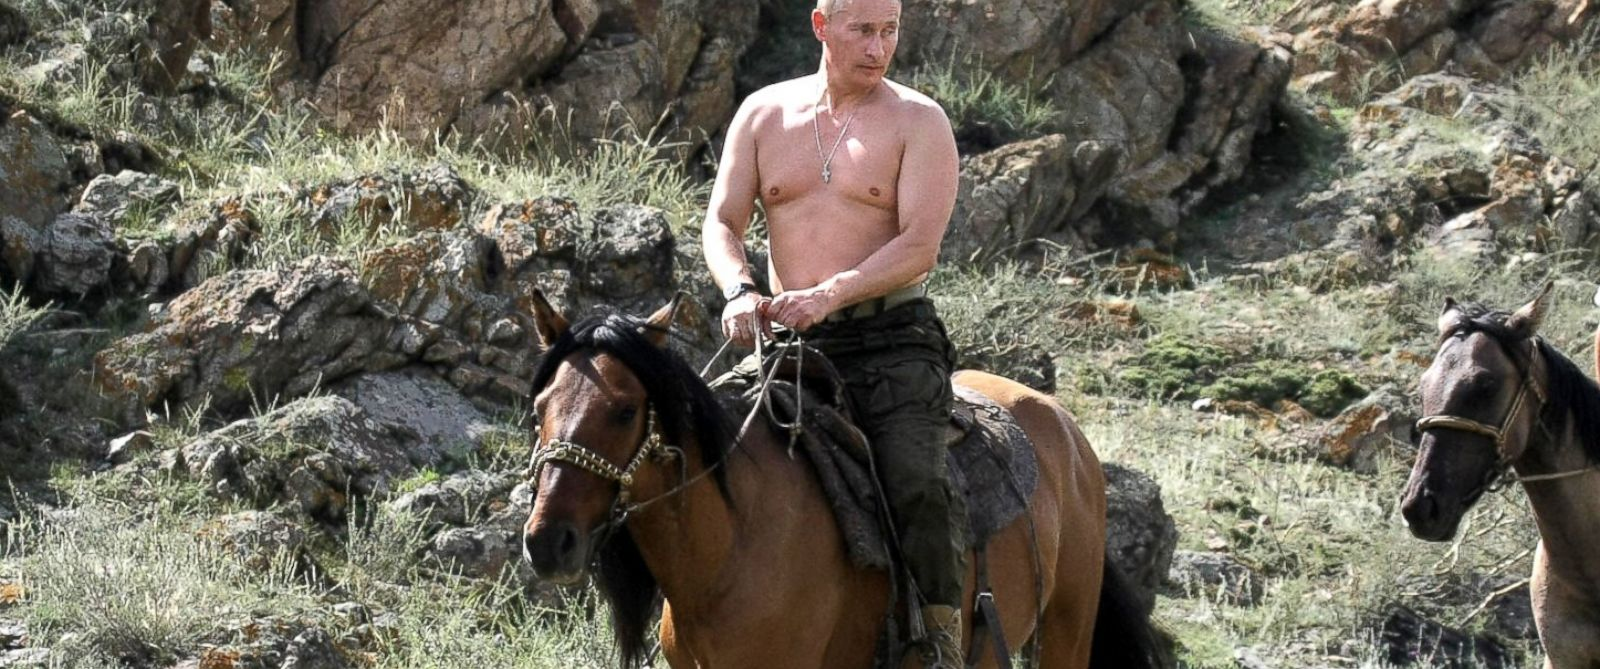 PHOTO: Then Russian Prime Minister Vladimir Putin rides a horse during his vacation outside the town of Kyzyl, Siberia, August 3, 2009.